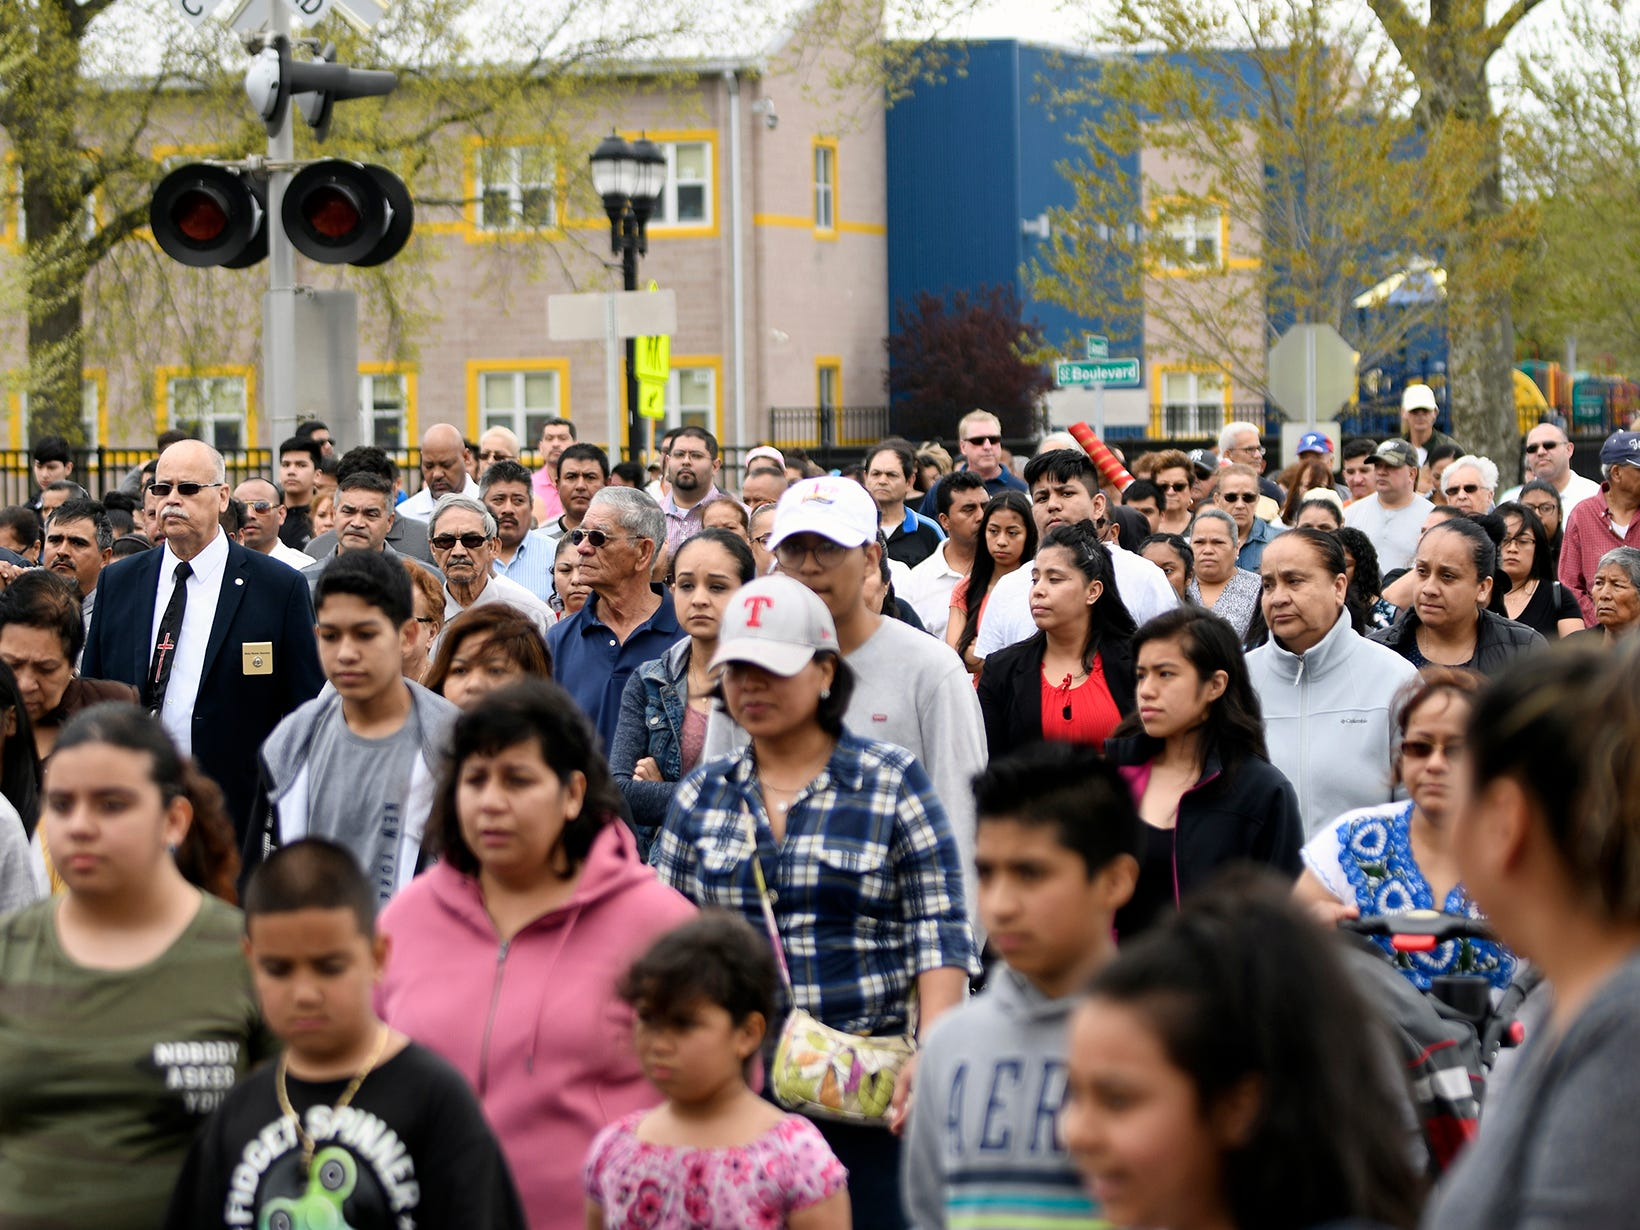 The performance of The Passion of the Christ played out on the streets of Vineland on Good Friday, April 19, 2019. The event was hosted by Divine Mercy Parish.